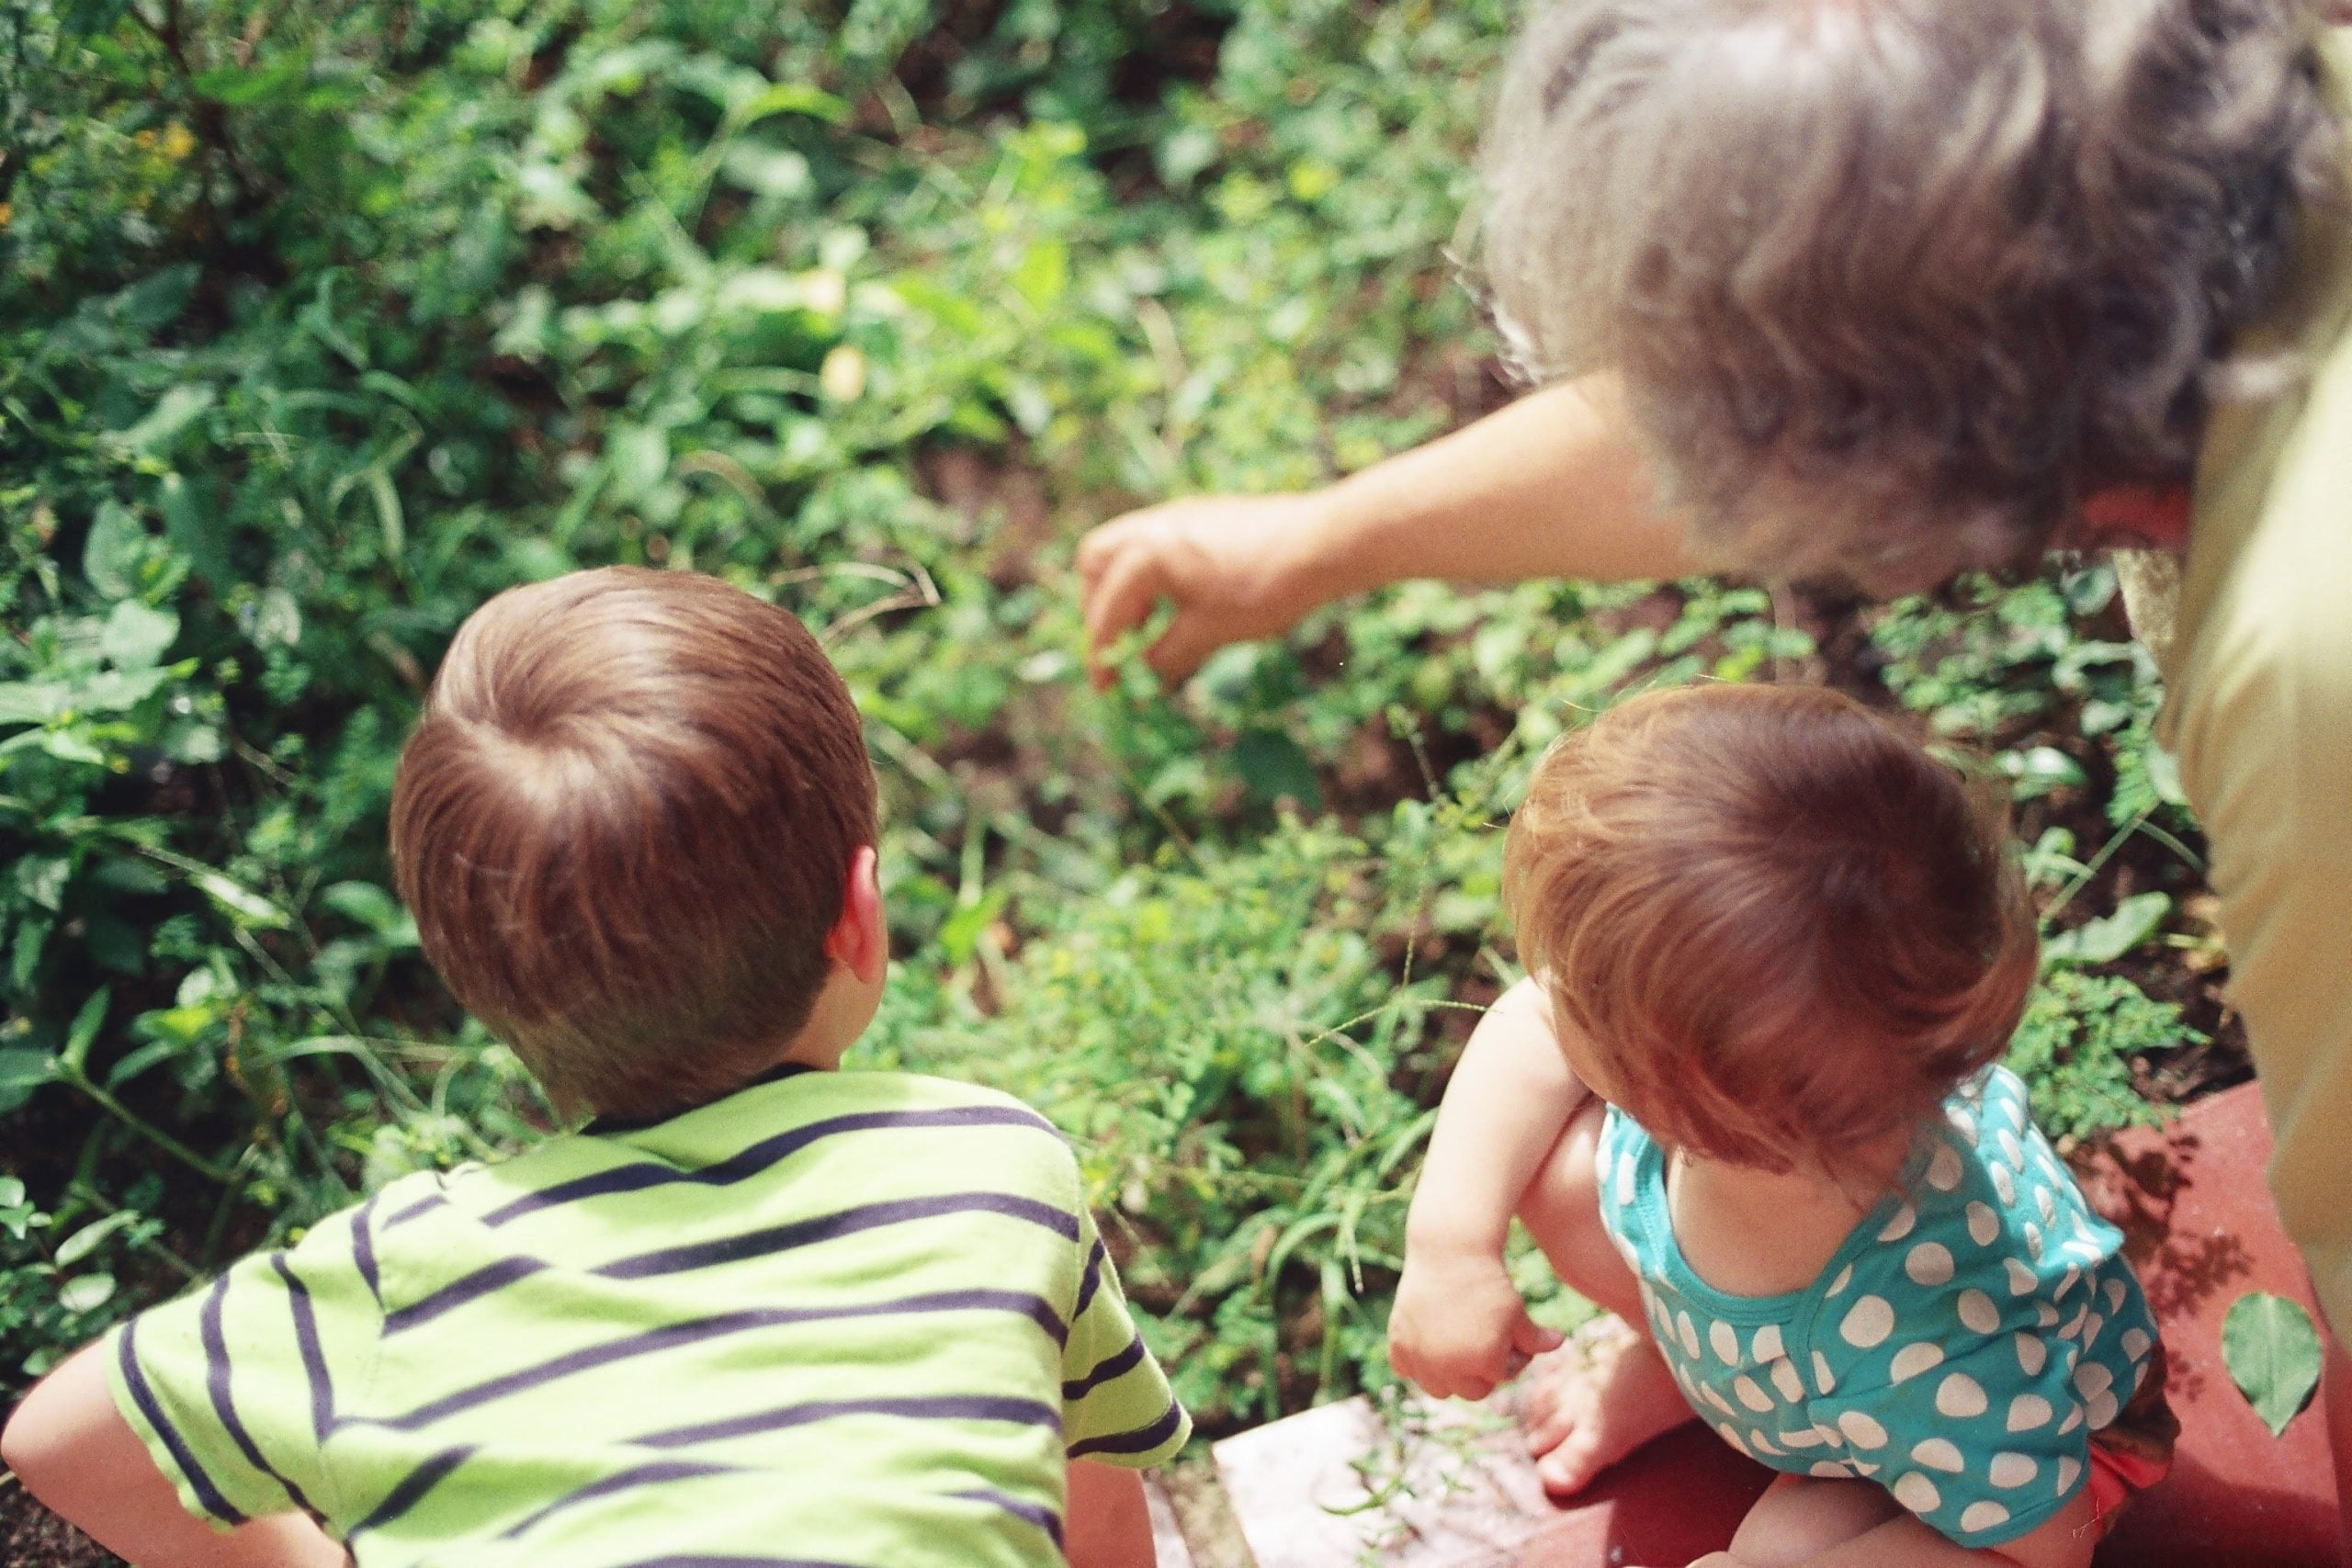 How To Protect Your Parents From Undue Influence